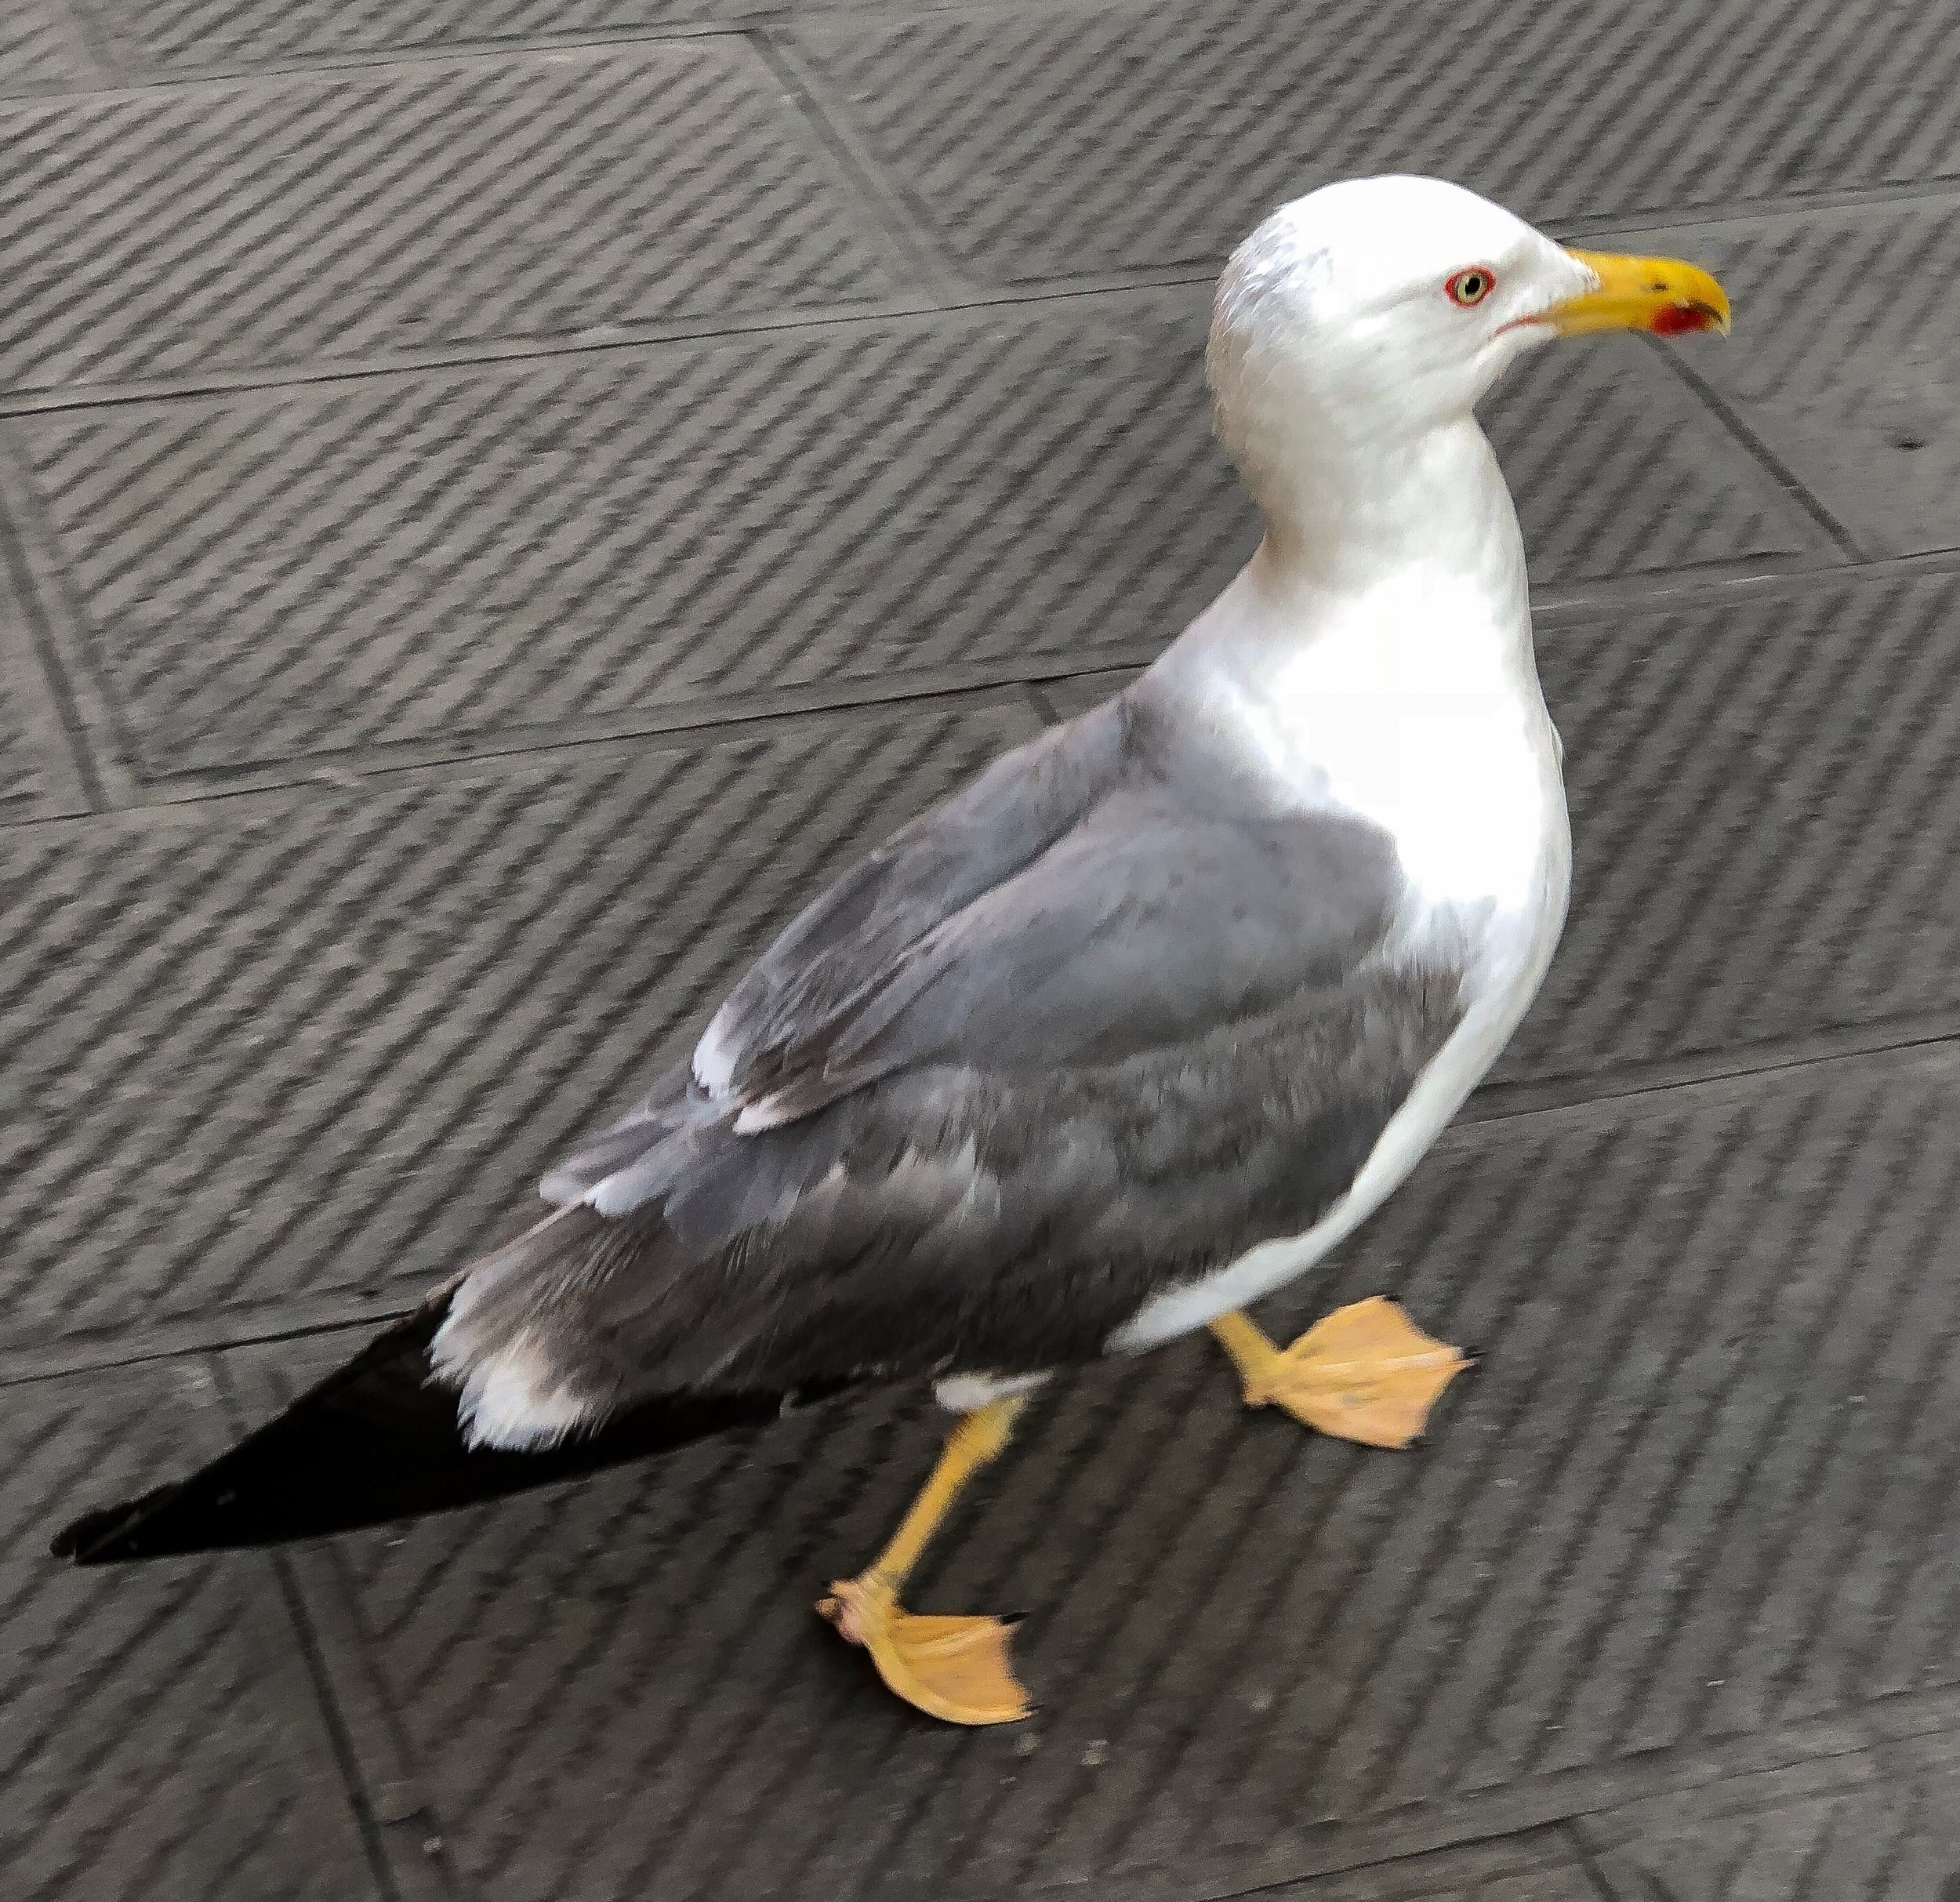 So I am just going about my merry way when I notice a seagull strolling next to me! I am just kind of obsessed with these friendly birds!